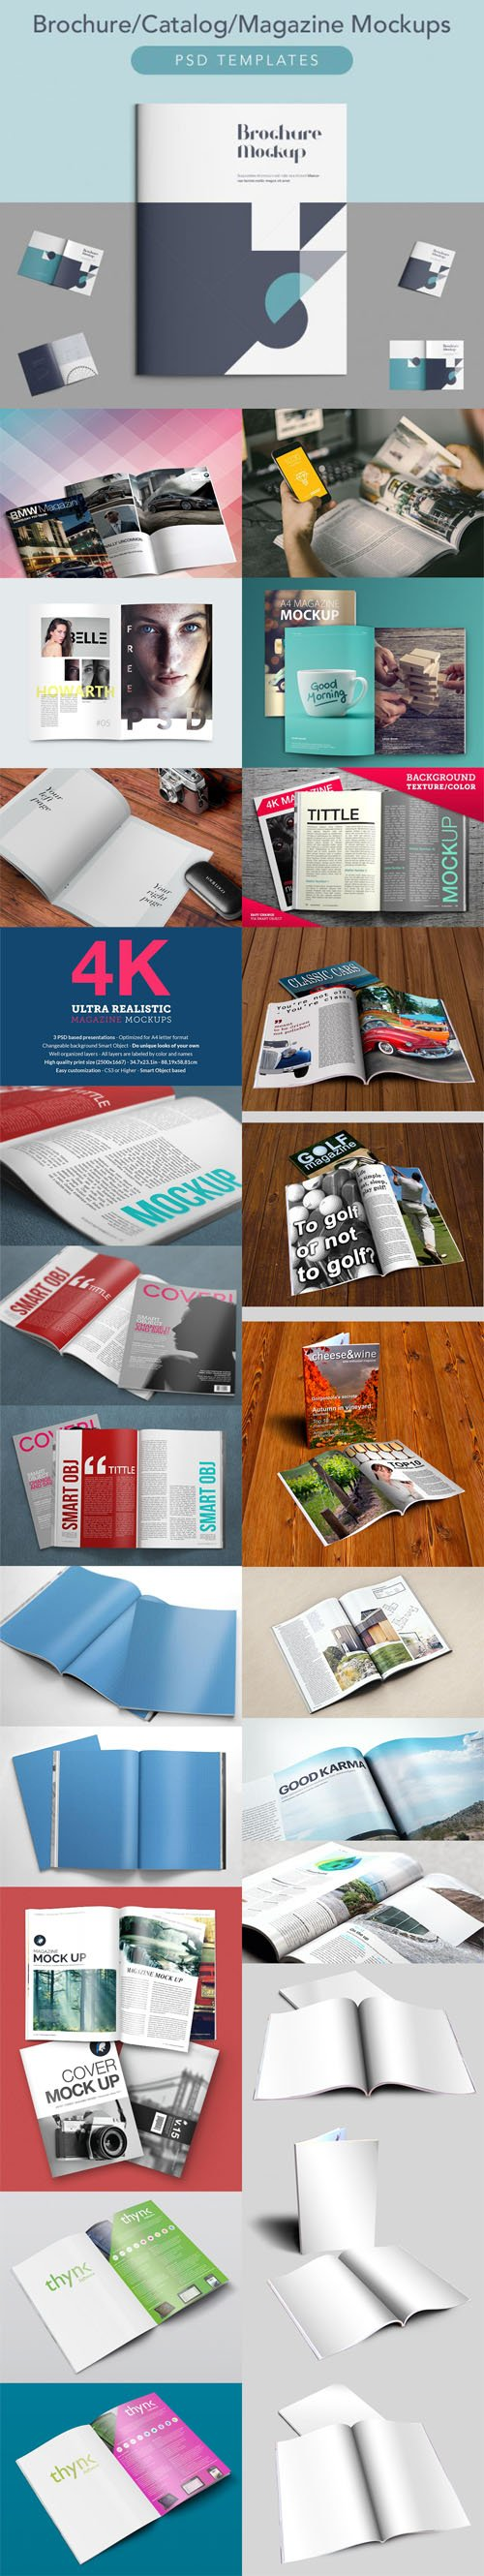 Photorealistic Magazine Design PSD Mockups Collection